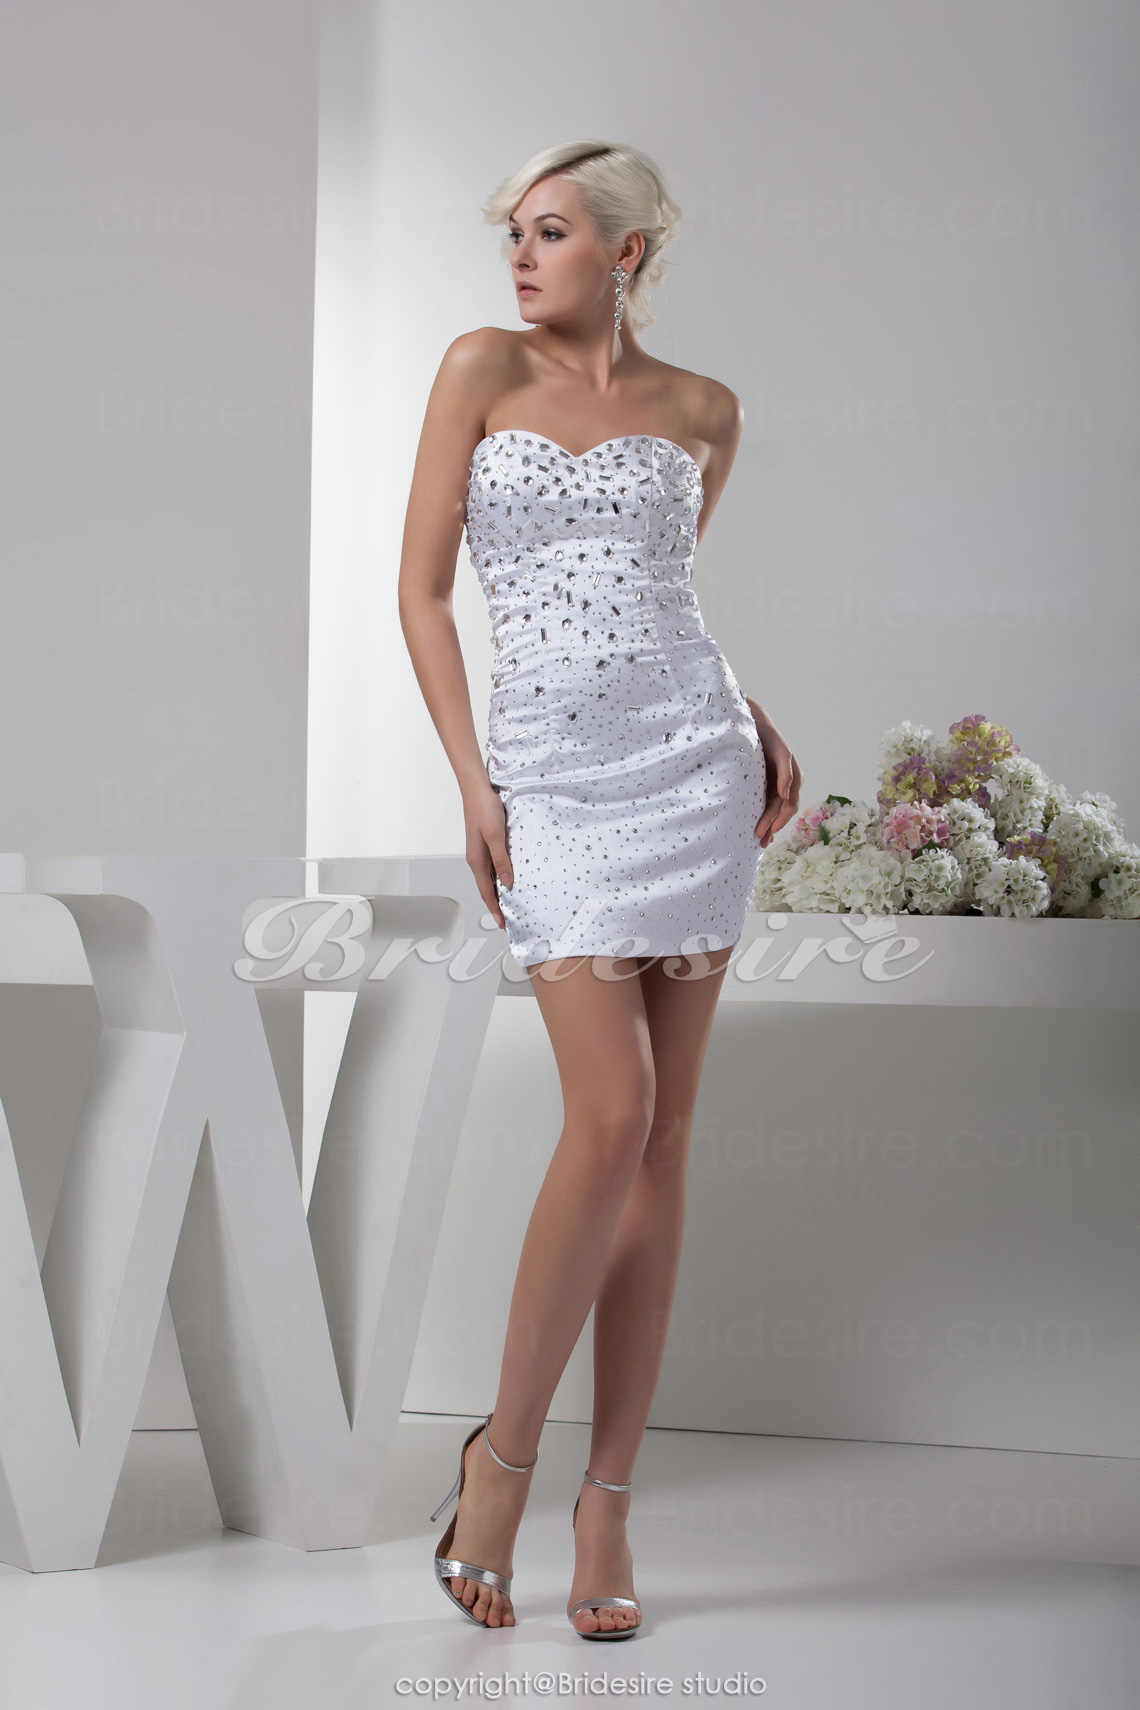 Sheath/Column Sweetheart Short/Mini Sleeveless Satin Dress